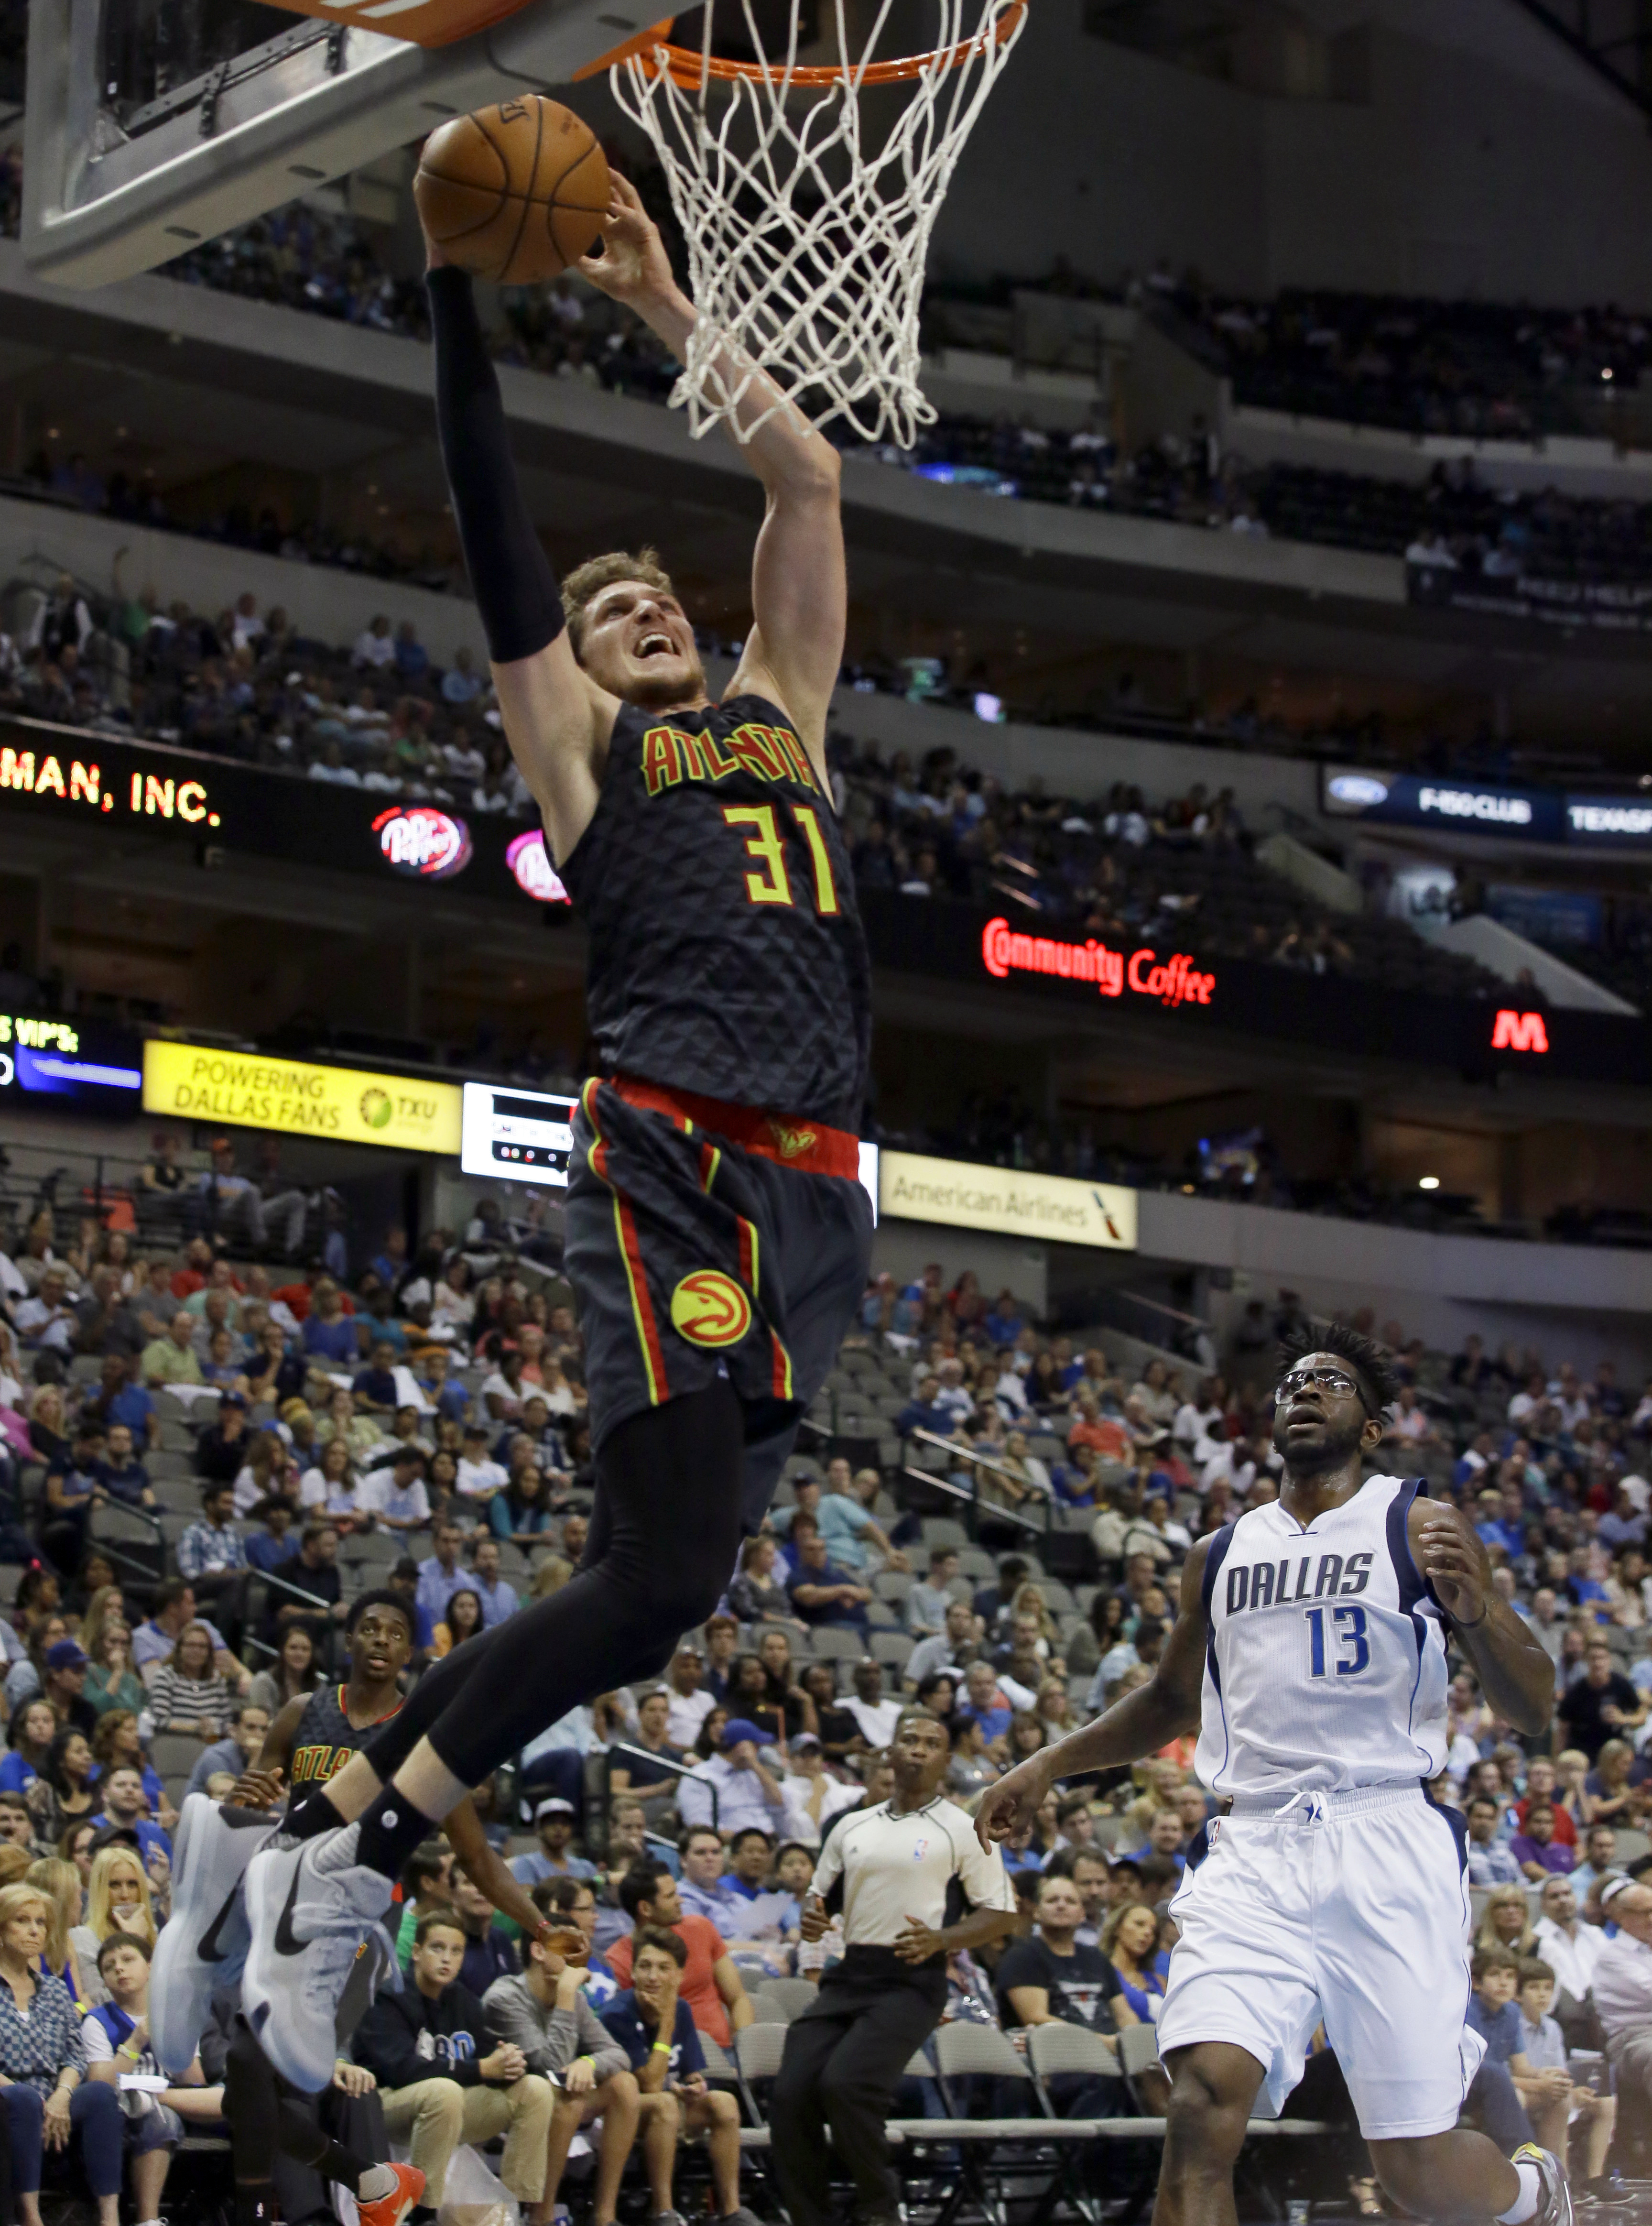 Atlanta Hawks forward Mike Muscala (31) scores in front of Dallas Mavericks forward Jamil Wilson (13) during the second half of a preseason NBA basketball game Friday, Oct. 16, 2015, in Dallas. The Hawks won 91-84. (AP Photo/LM Otero)